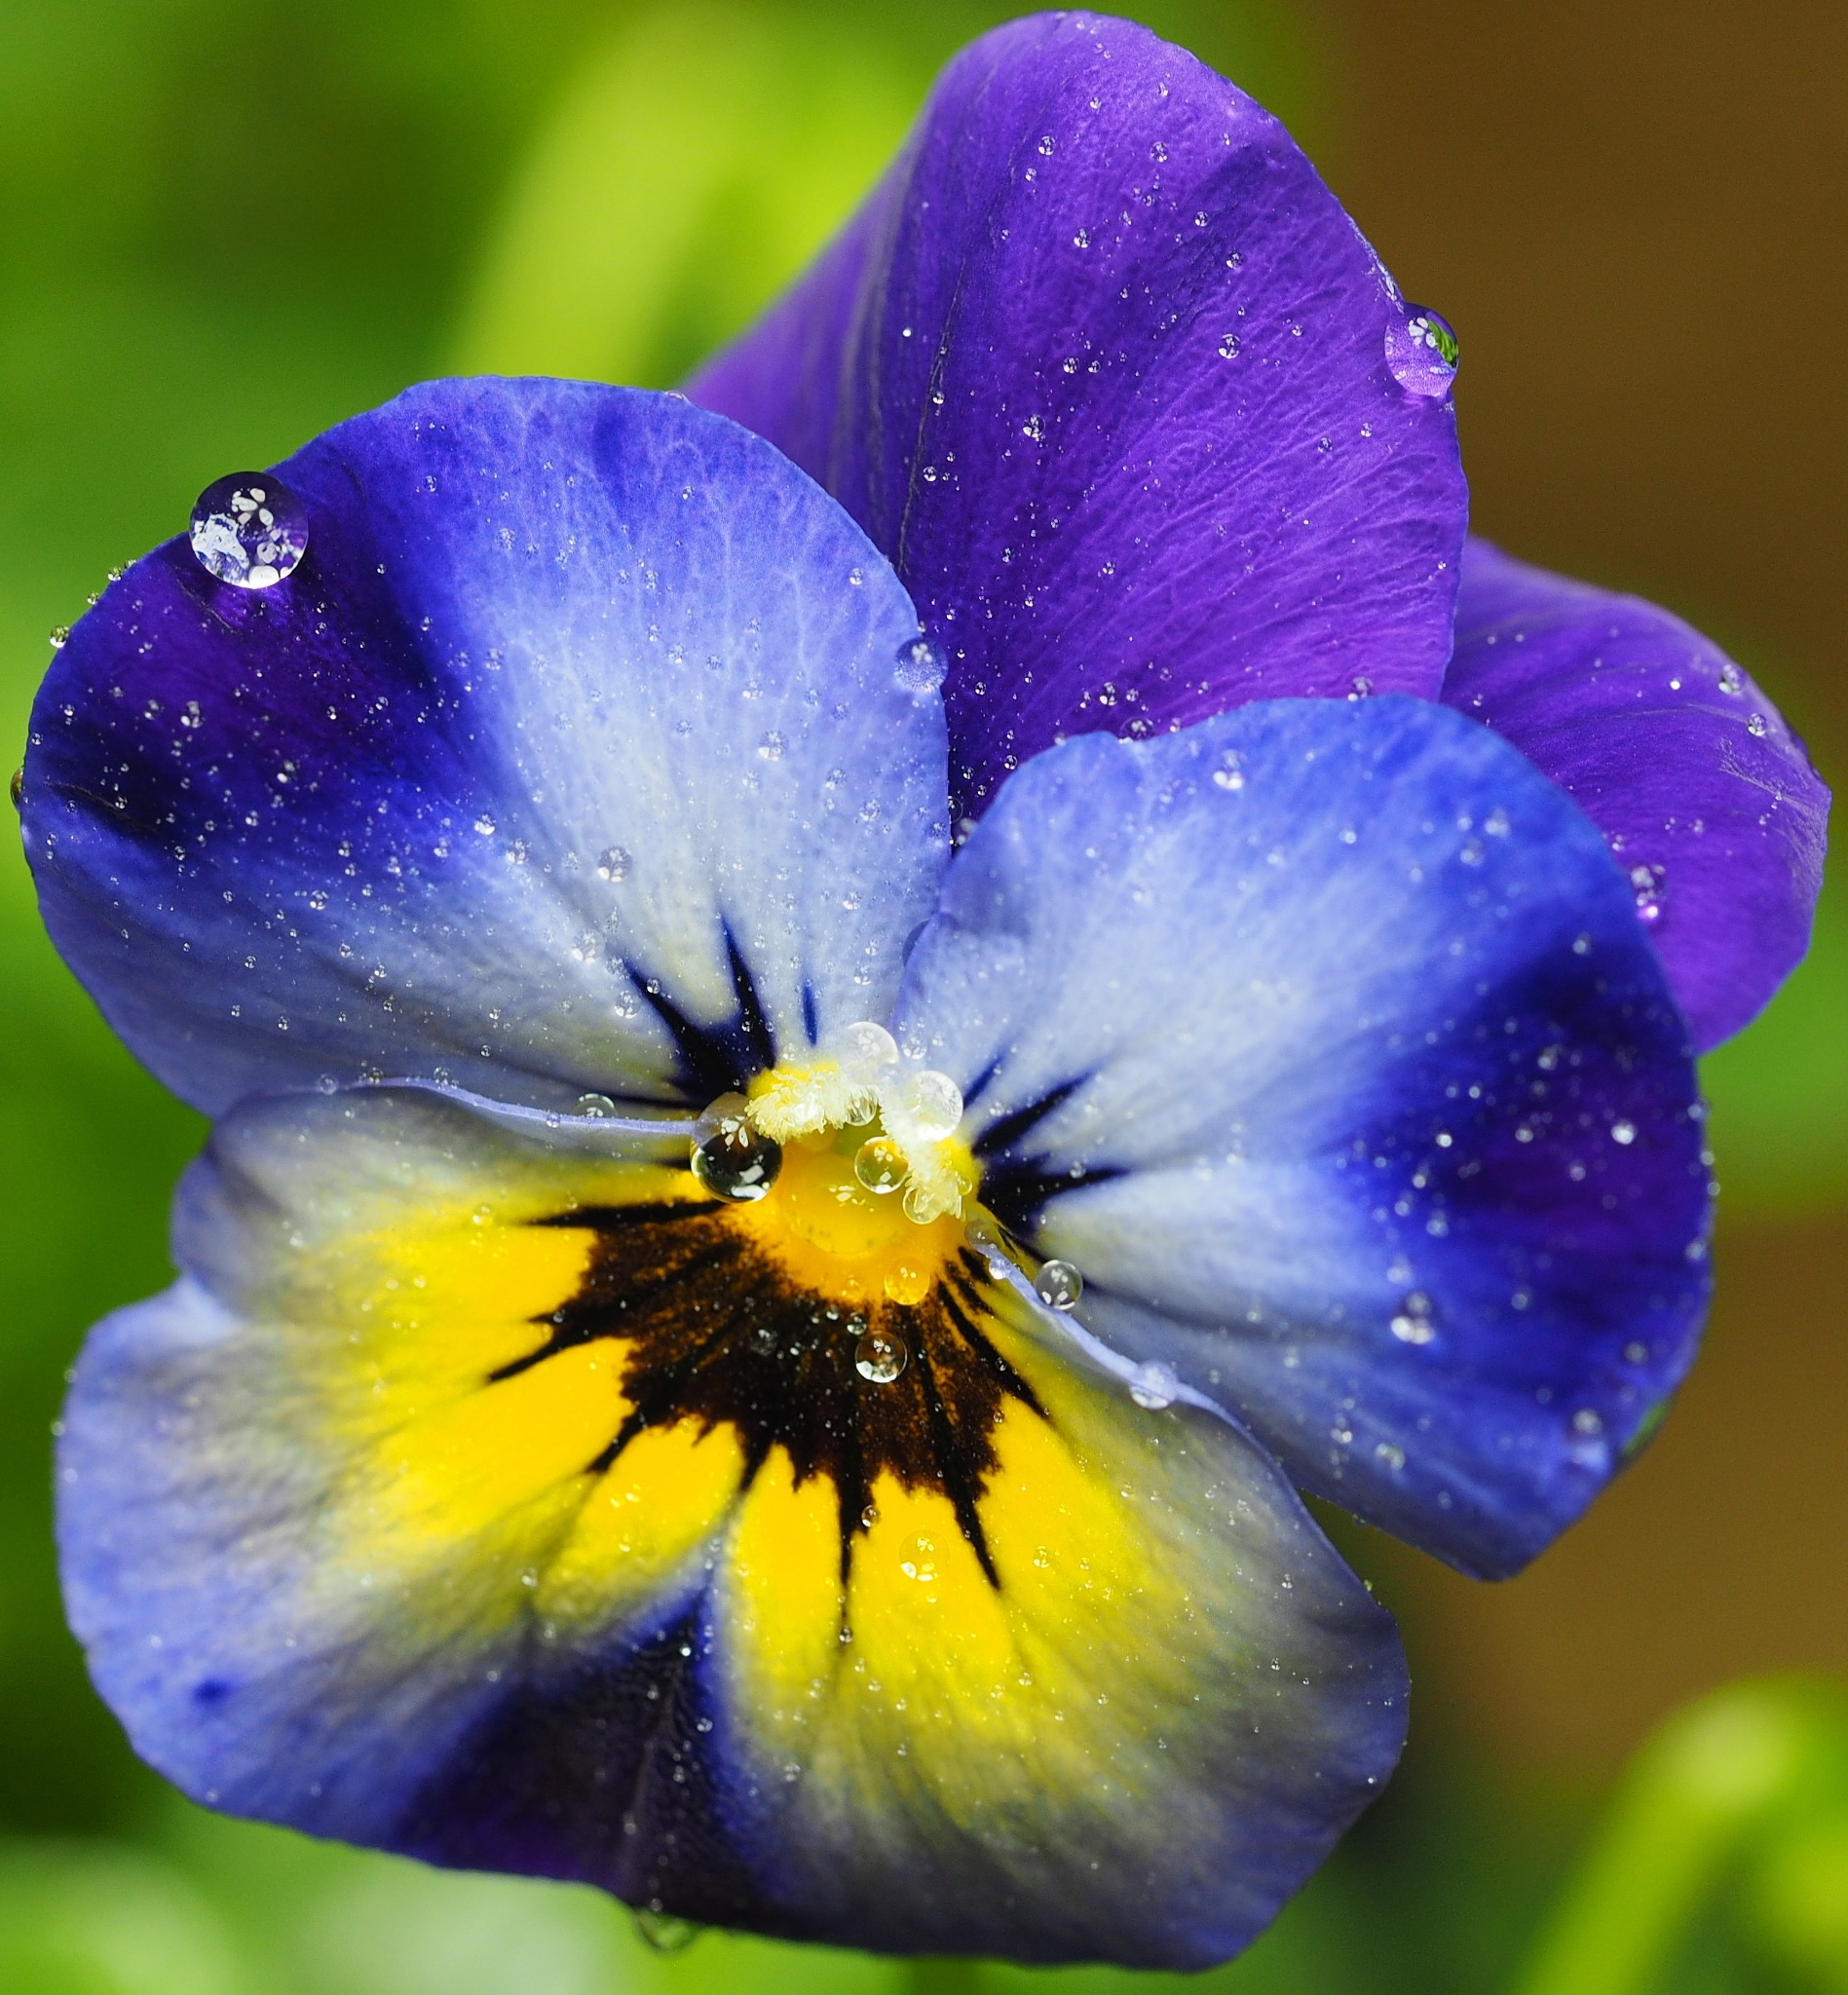 Violas - Little Faces - 2 by Gillian James